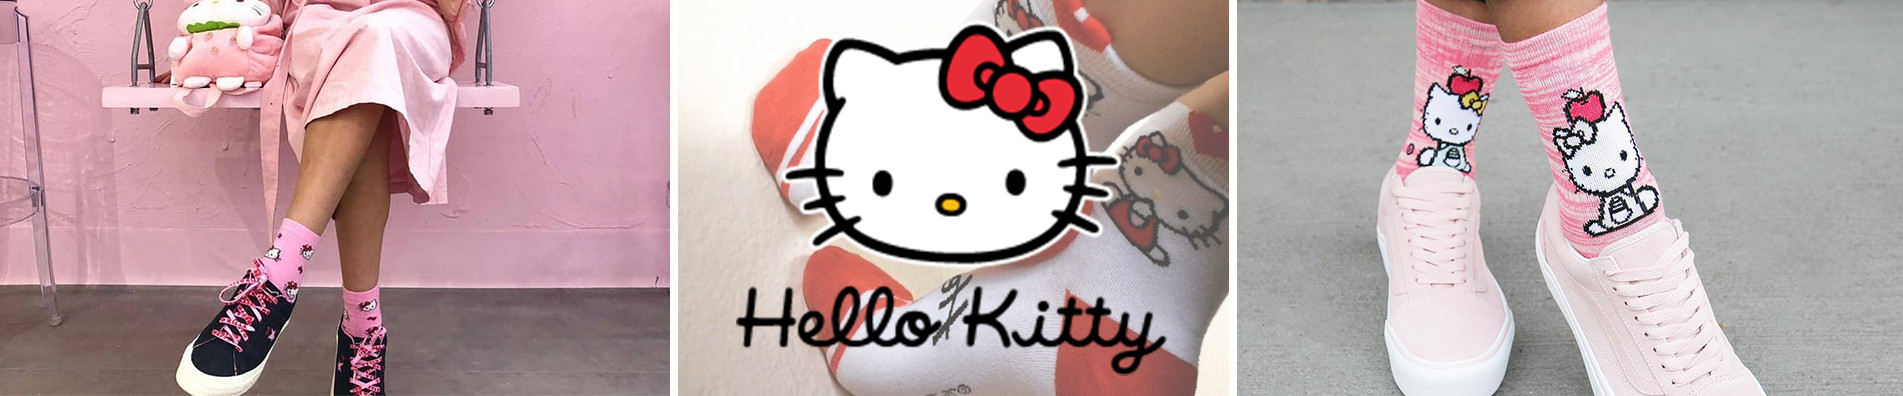 Chaussettes Hello Kitty | Mes Deux Chaussettes